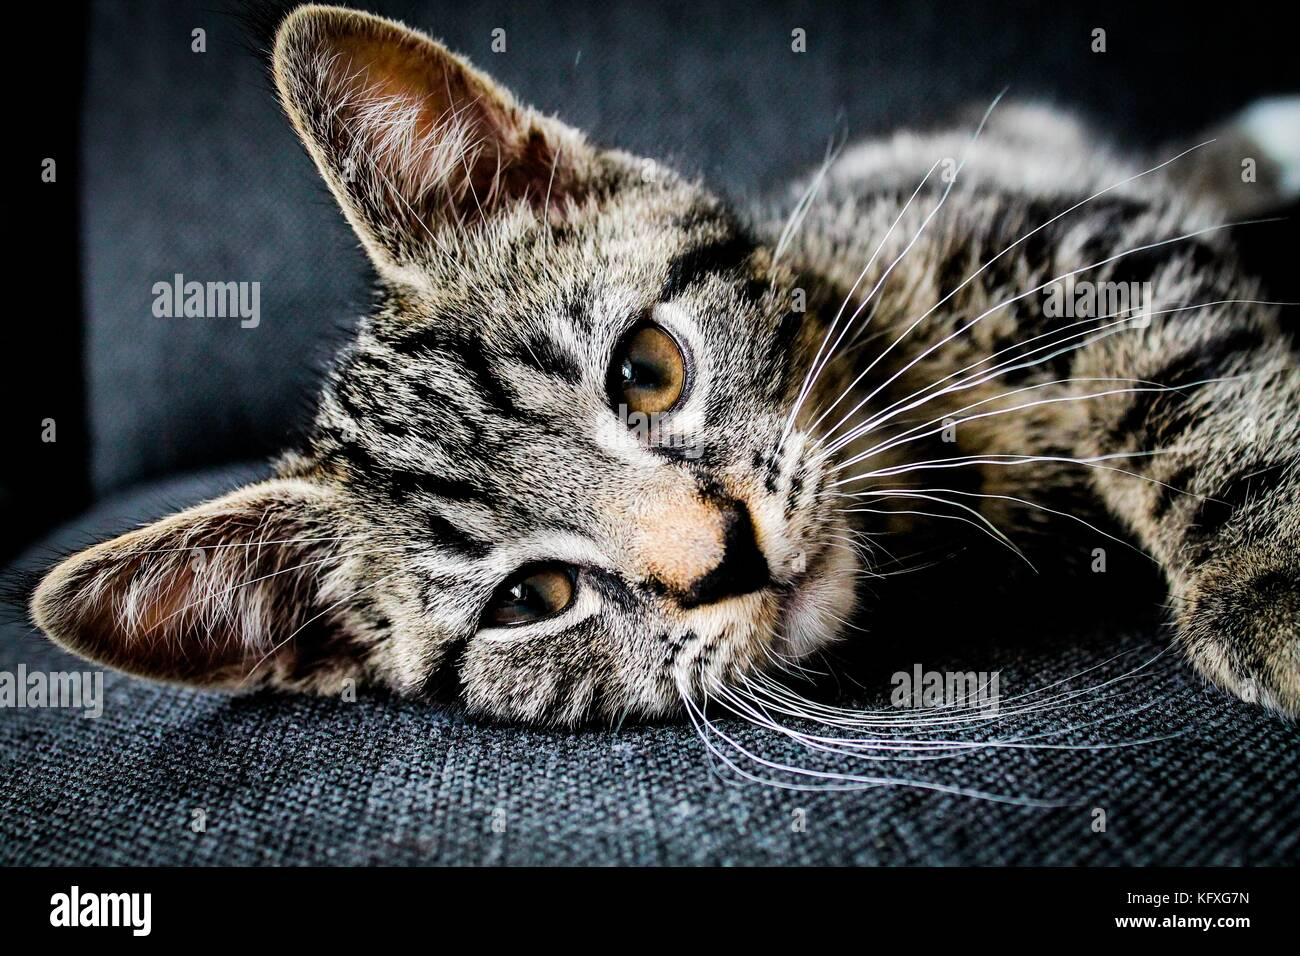 Tabby cat laying down - Stock Image